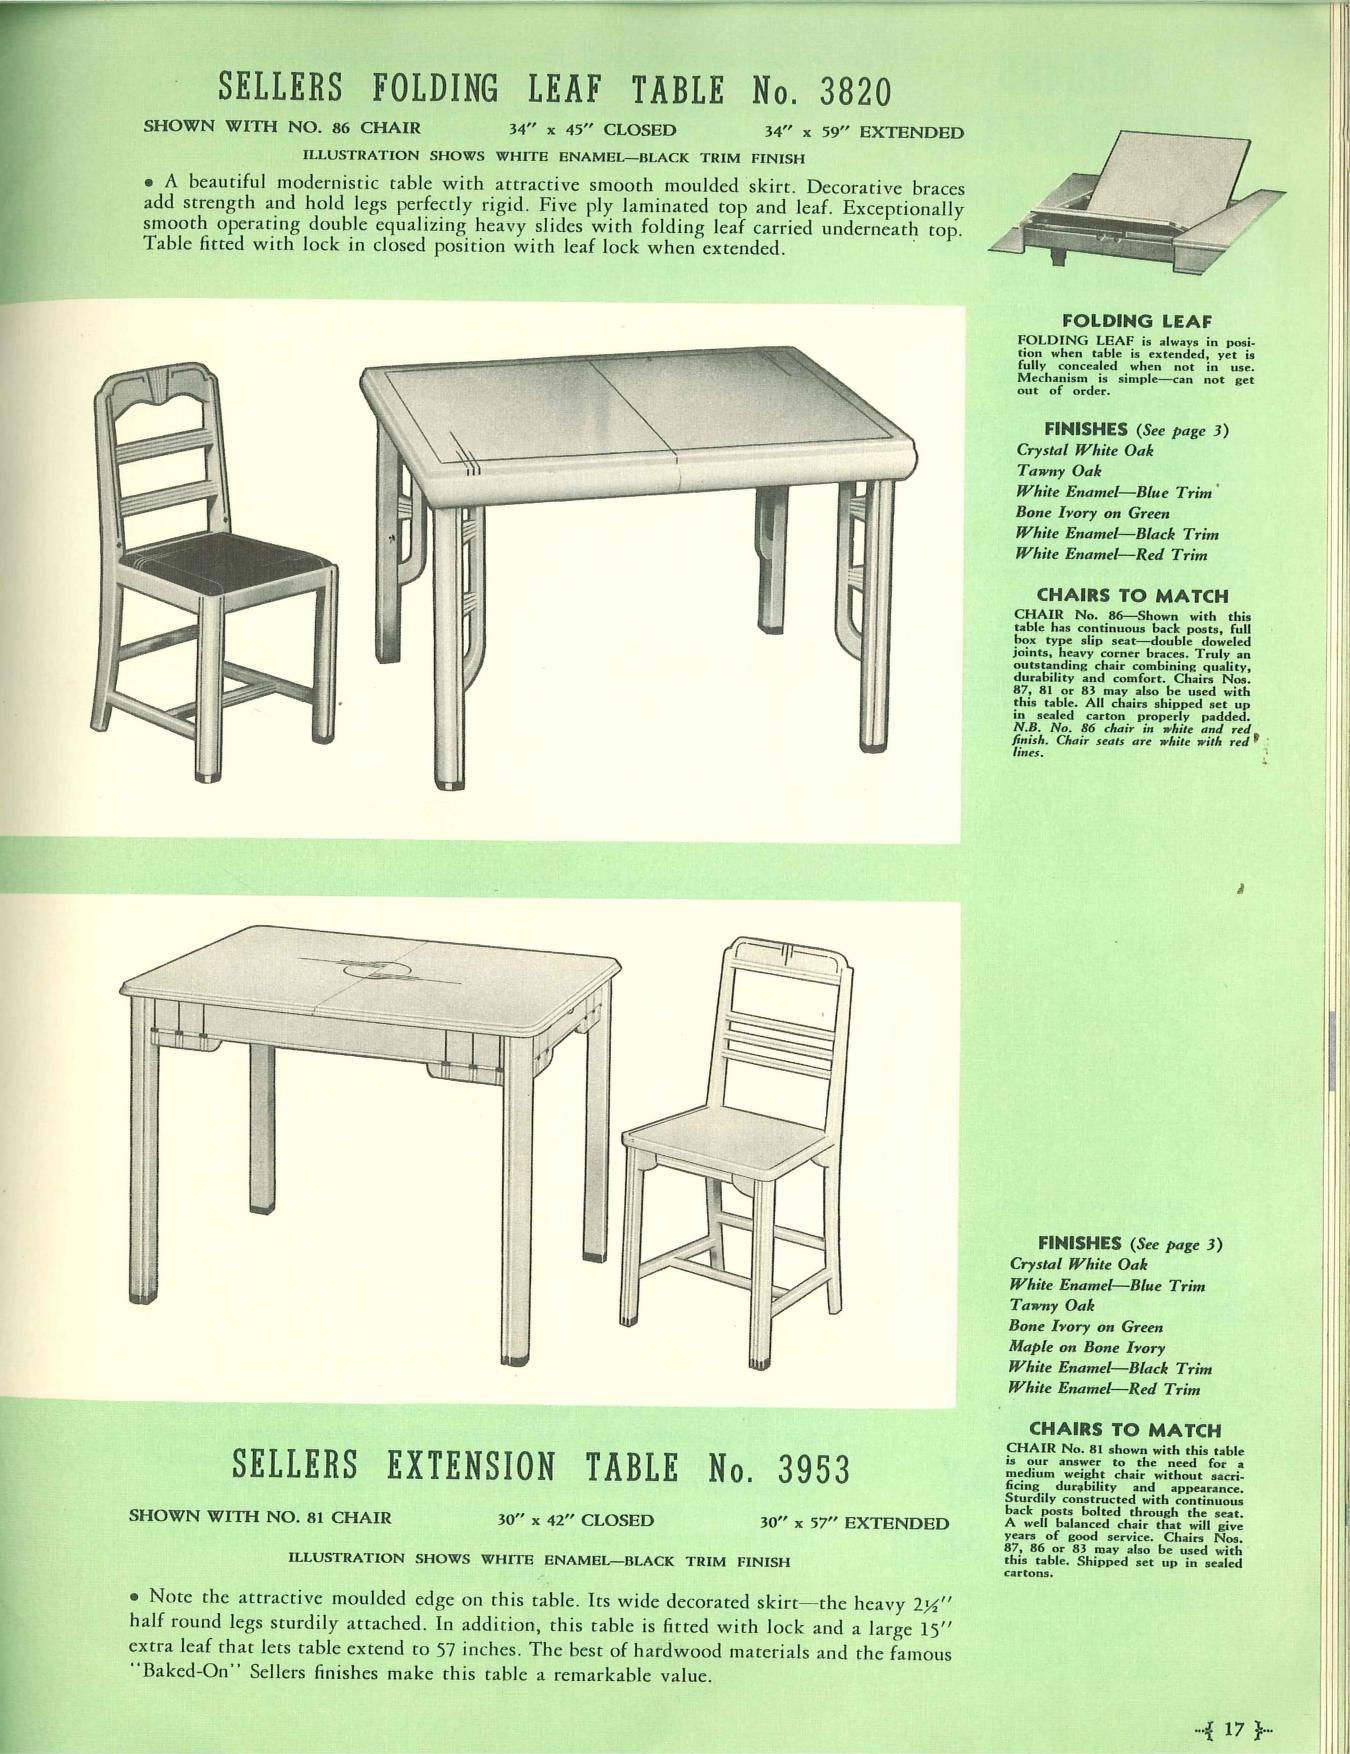 http://www.artdecoresource.com/2013/09/sellers-kitchen-furniture-for-1939.html